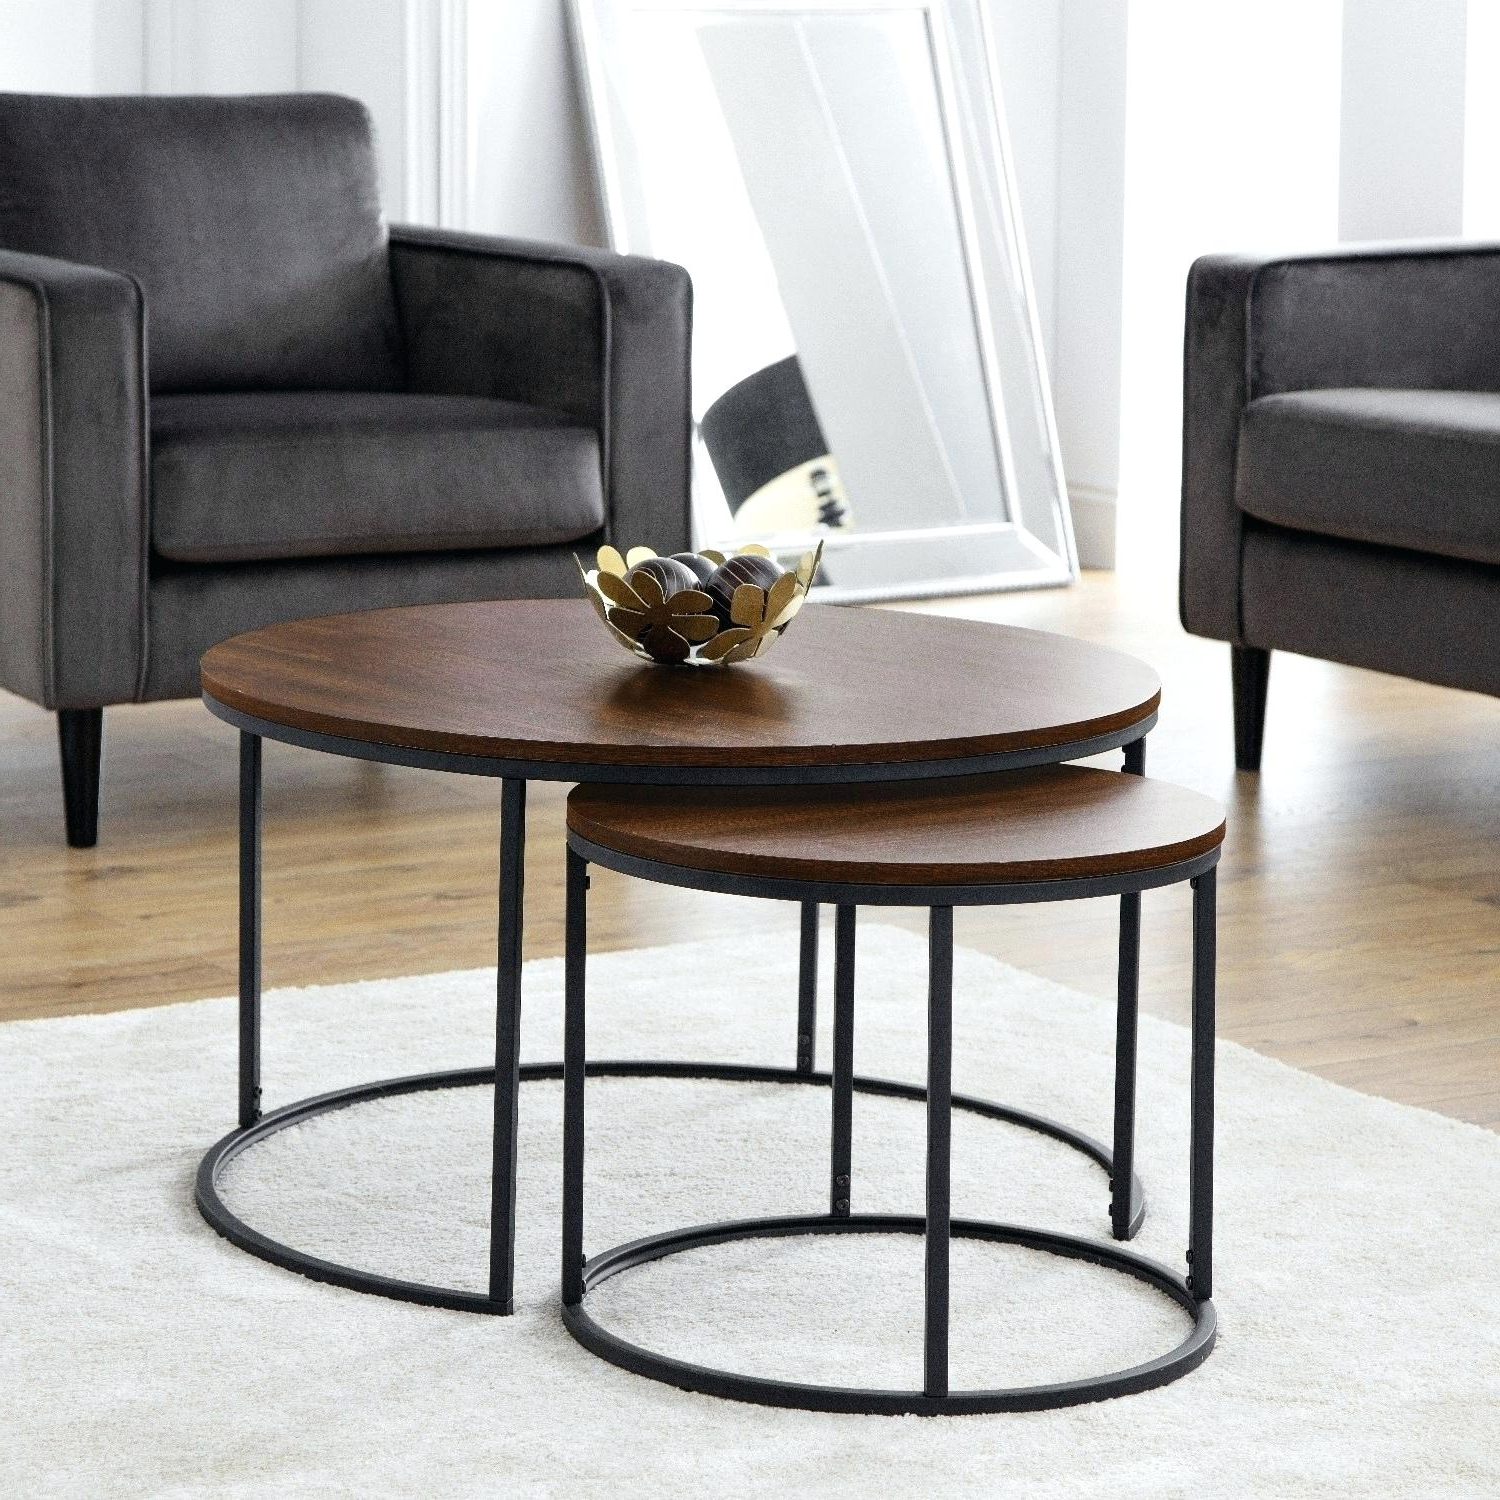 Nesting Coffee Tables Round – Tradepage (View 14 of 20)